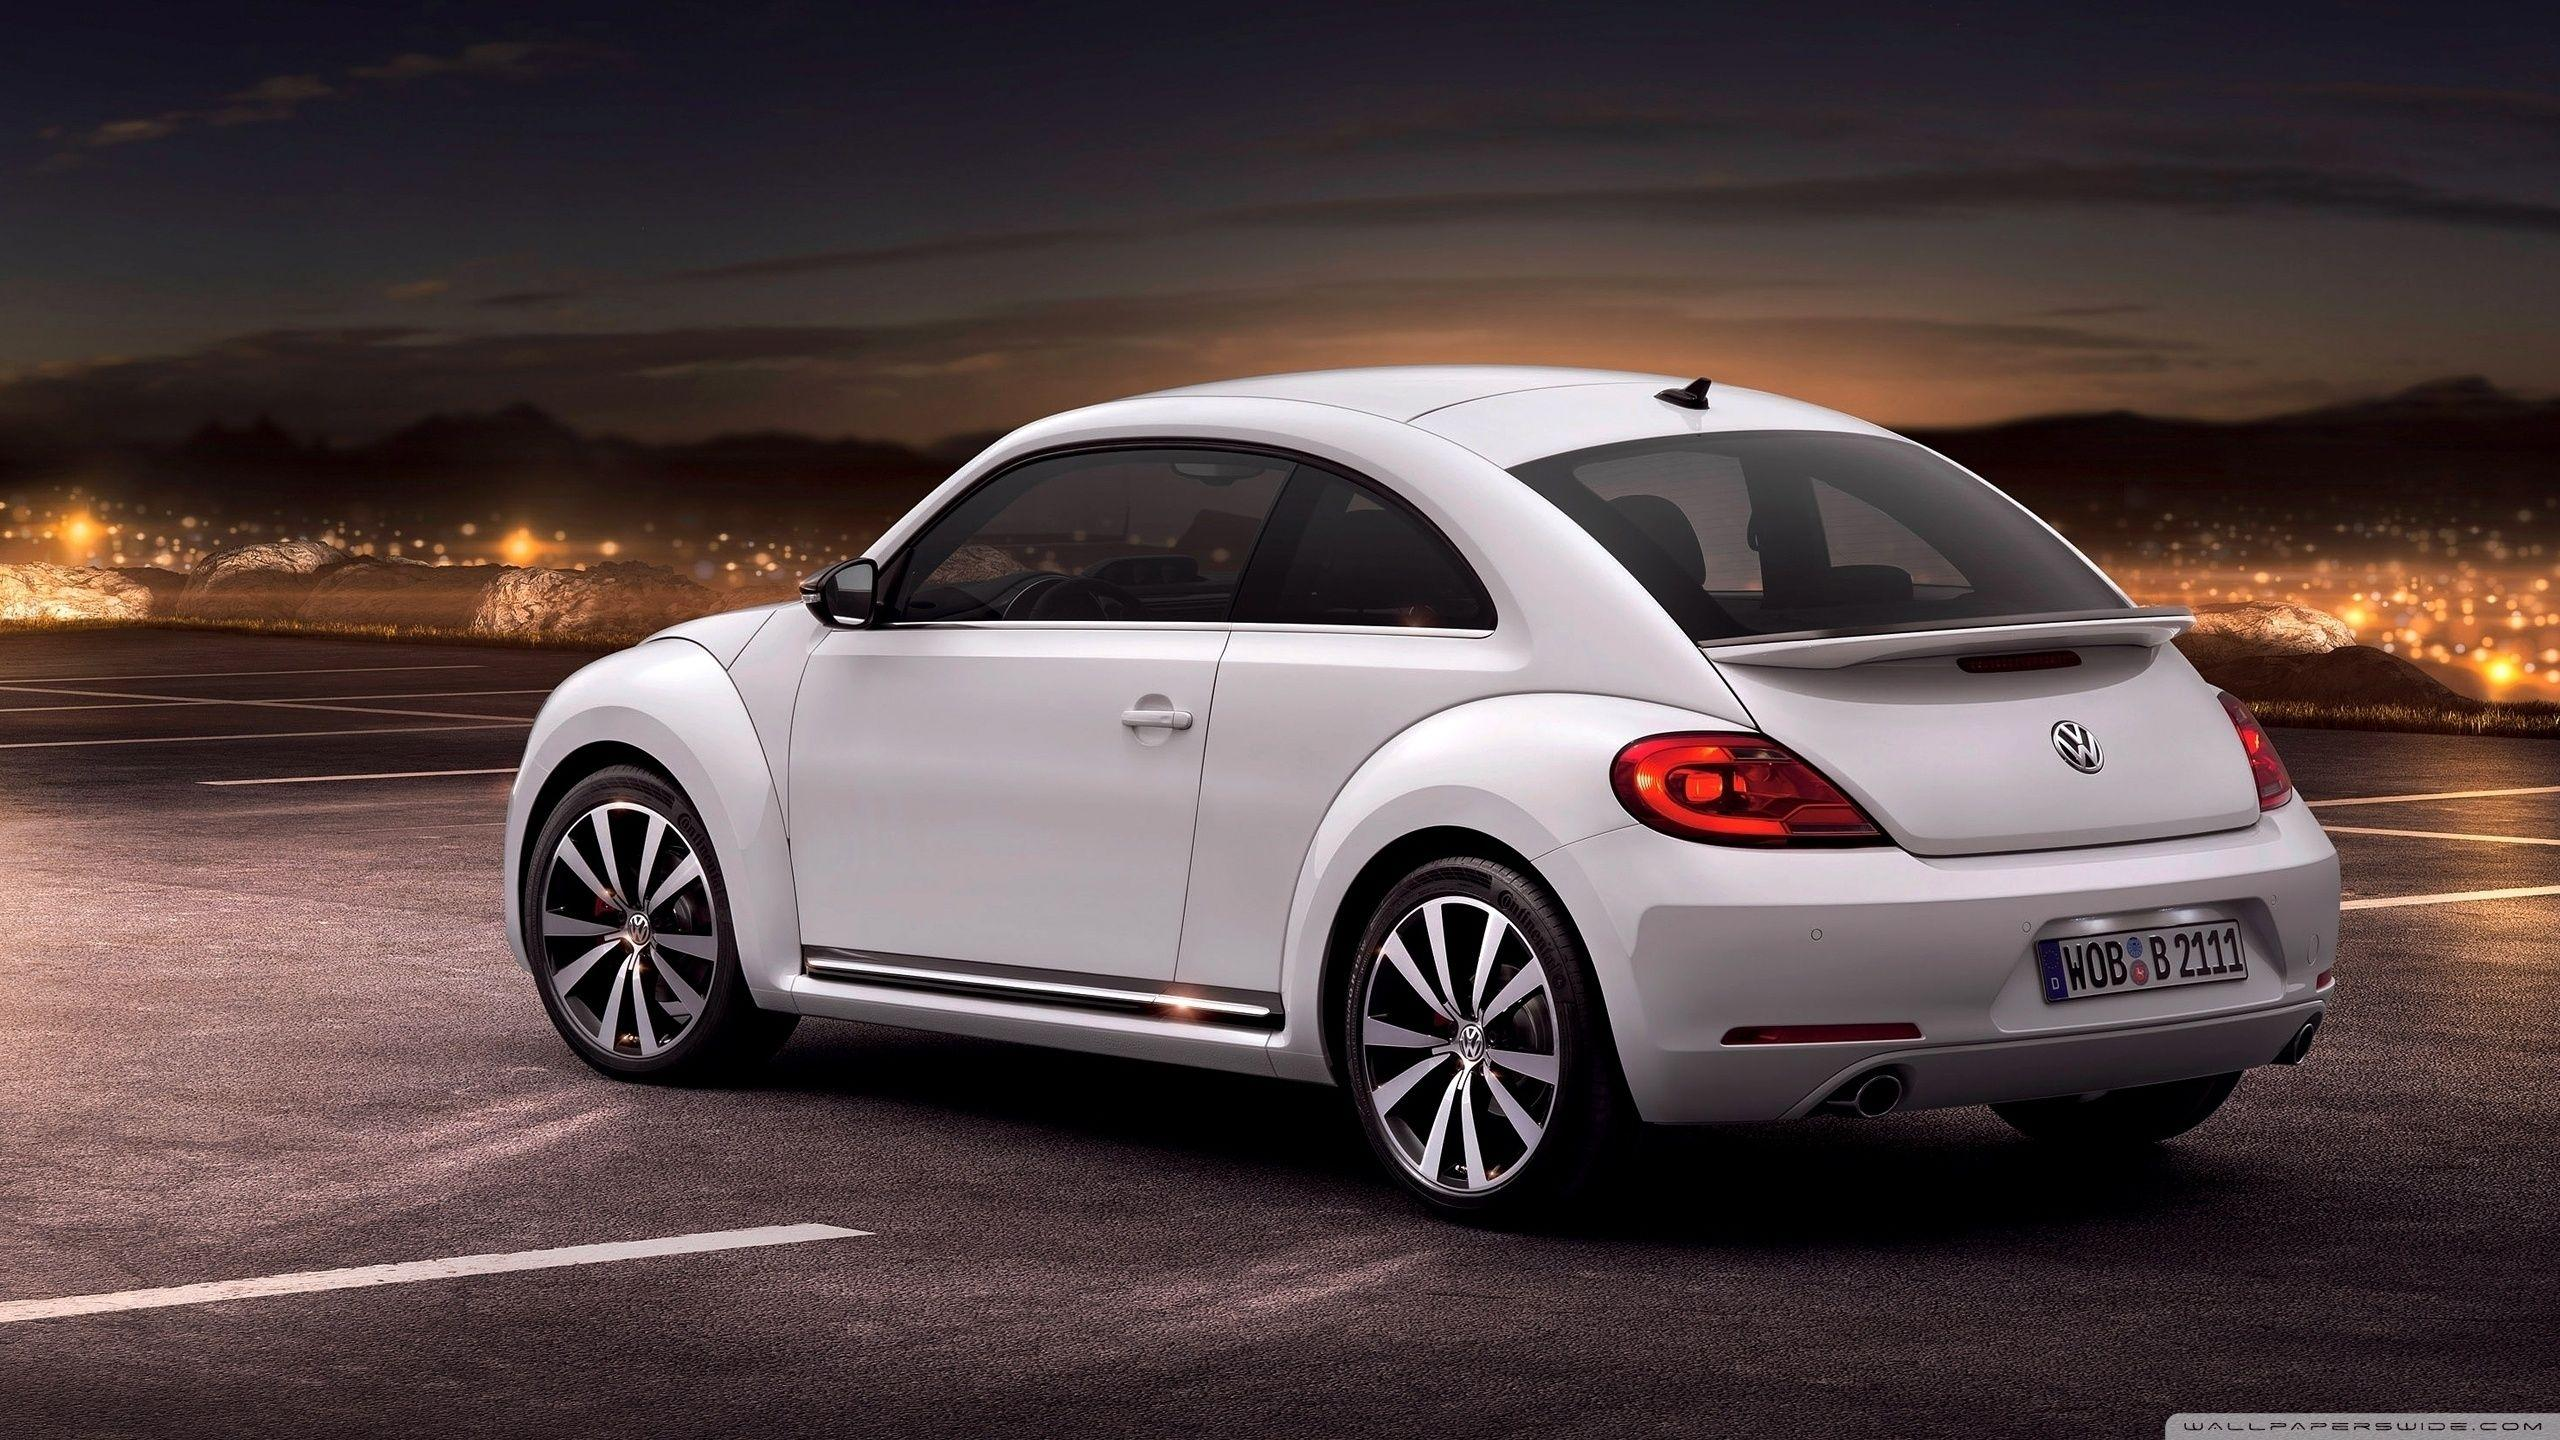 New Volkswagen Beetle HD desktop wallpapers : High Definition